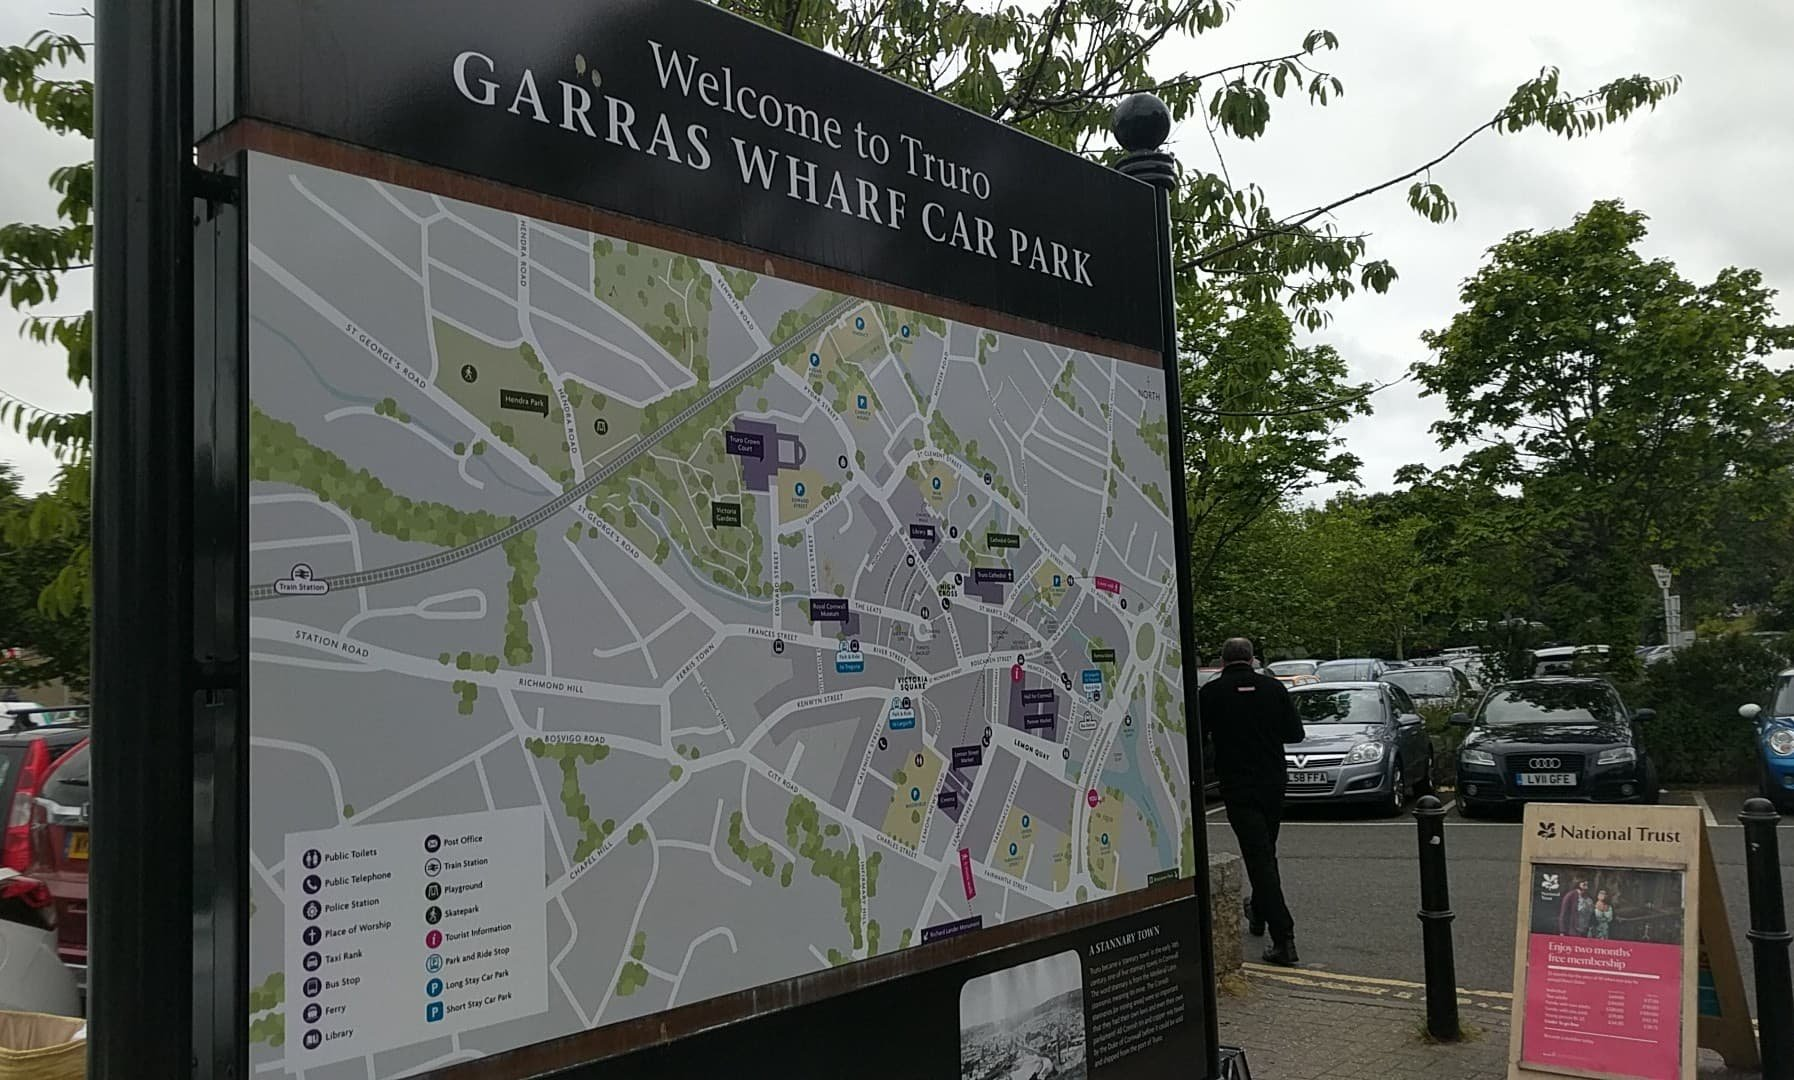 Funds received from parking parks will be used to build garages 70